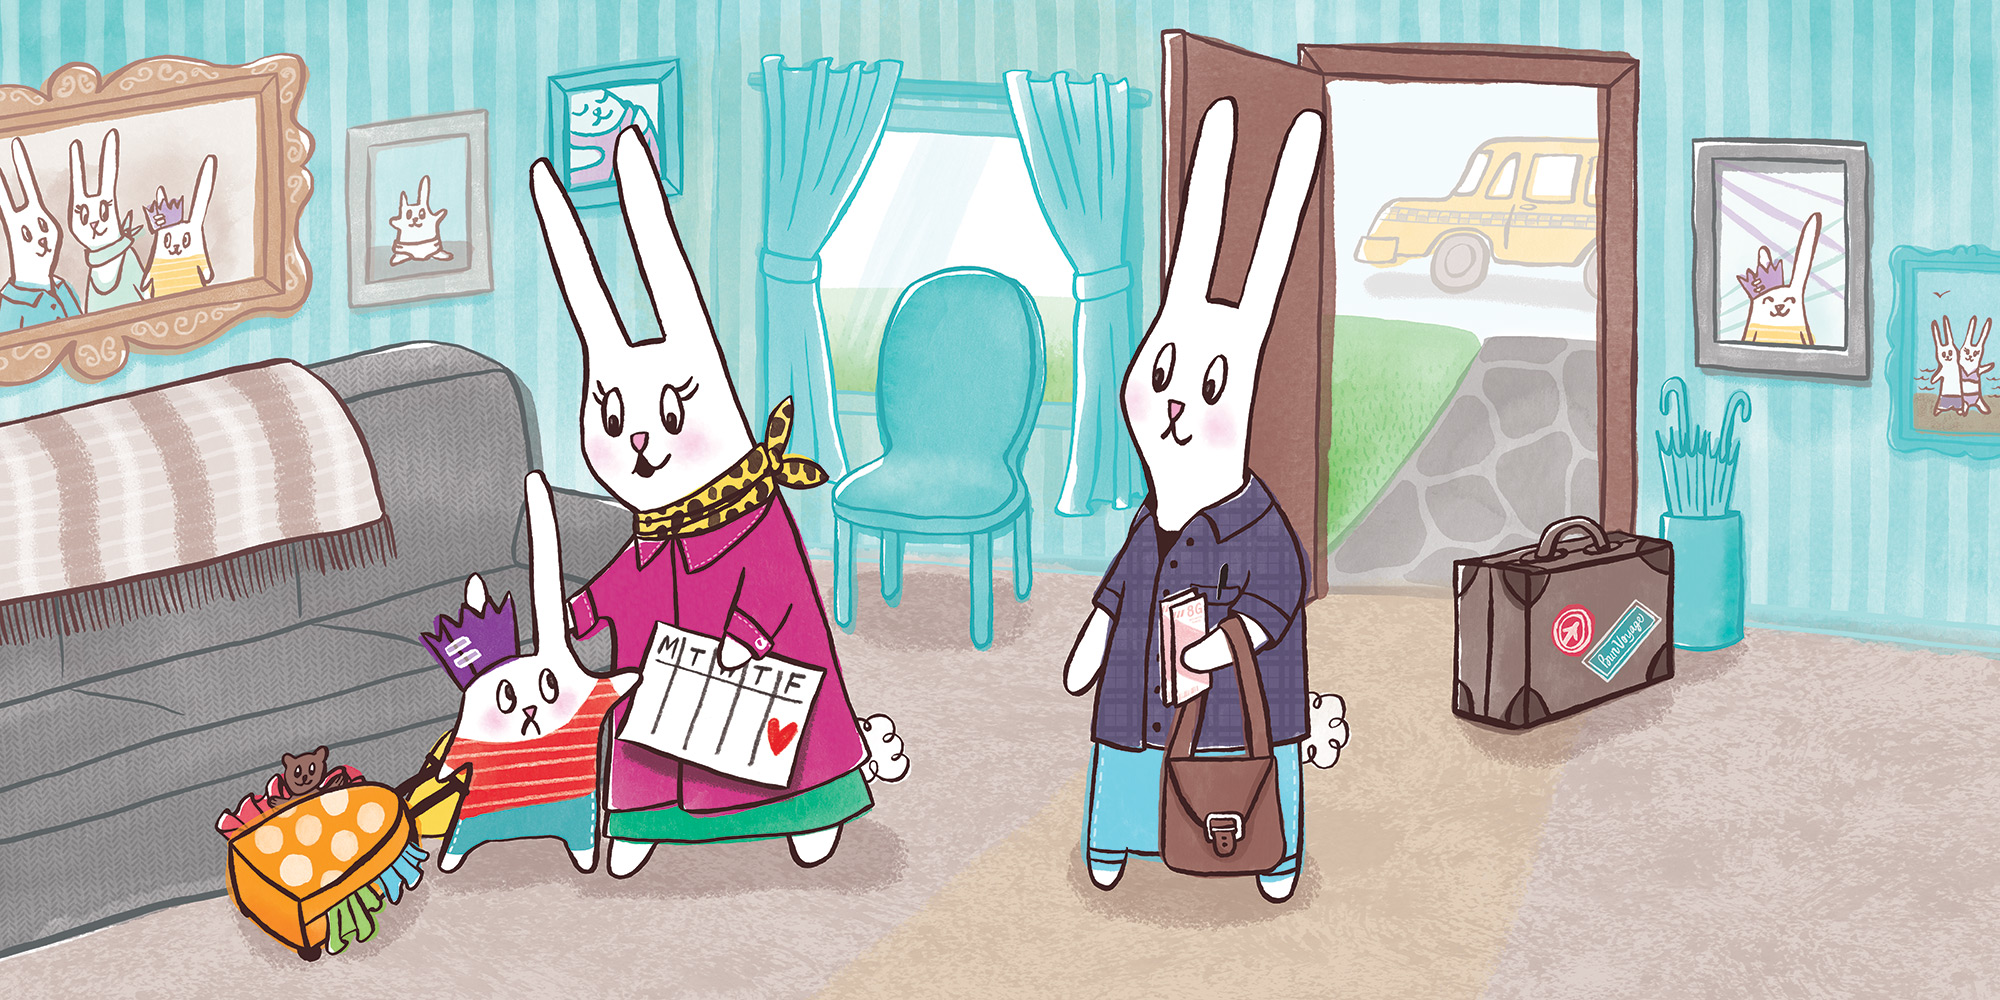 BUNNY'S STAYCATION, published by Scholastic